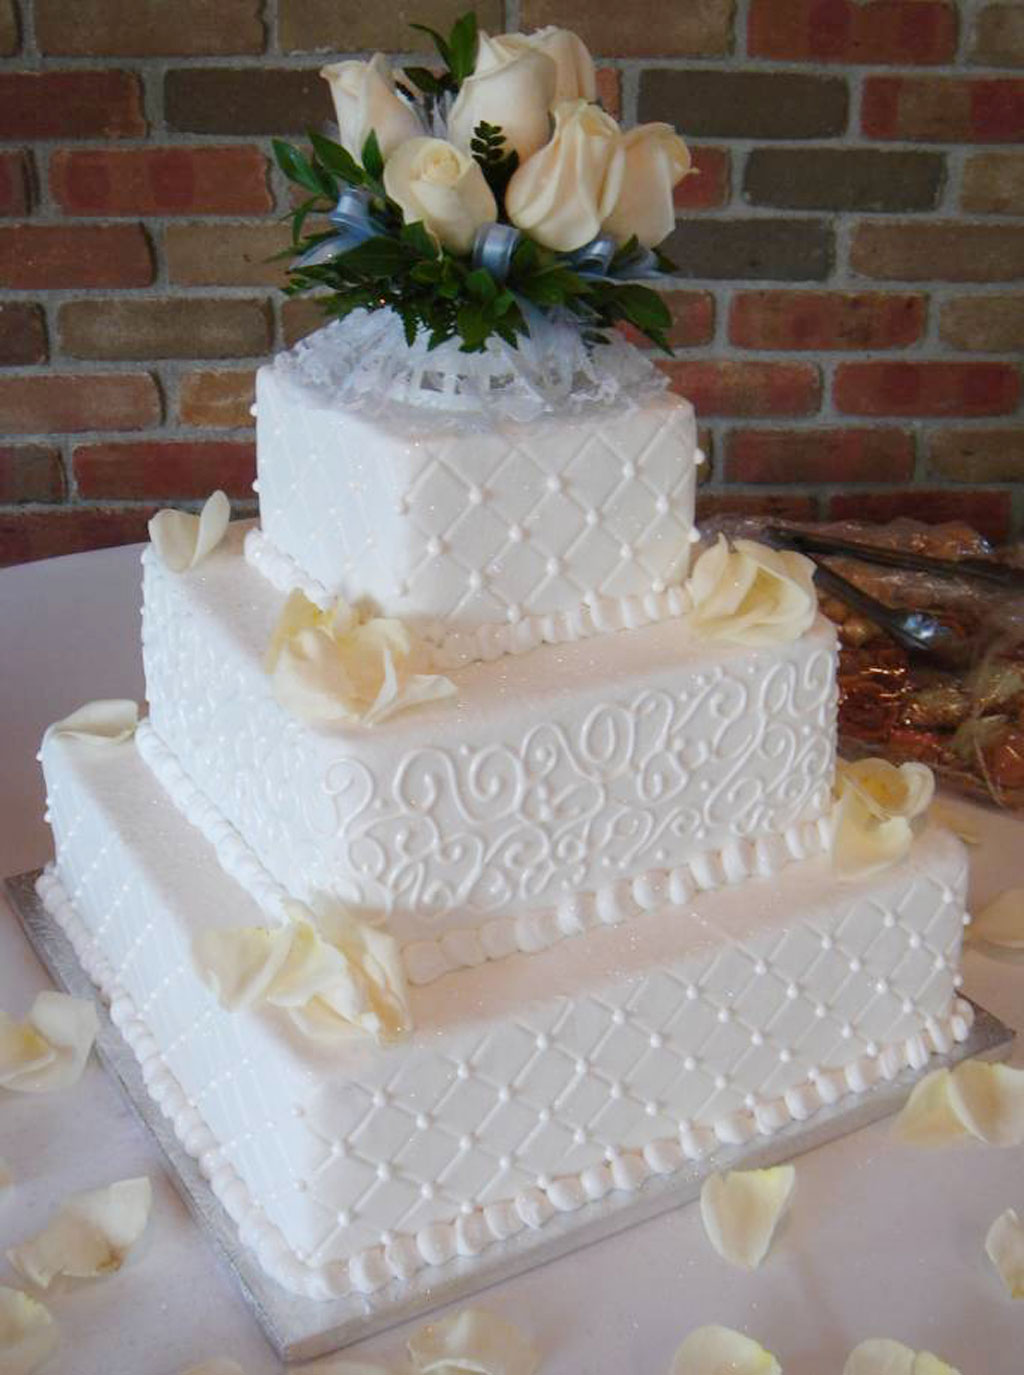 How Early Can You Make A Wedding Cake